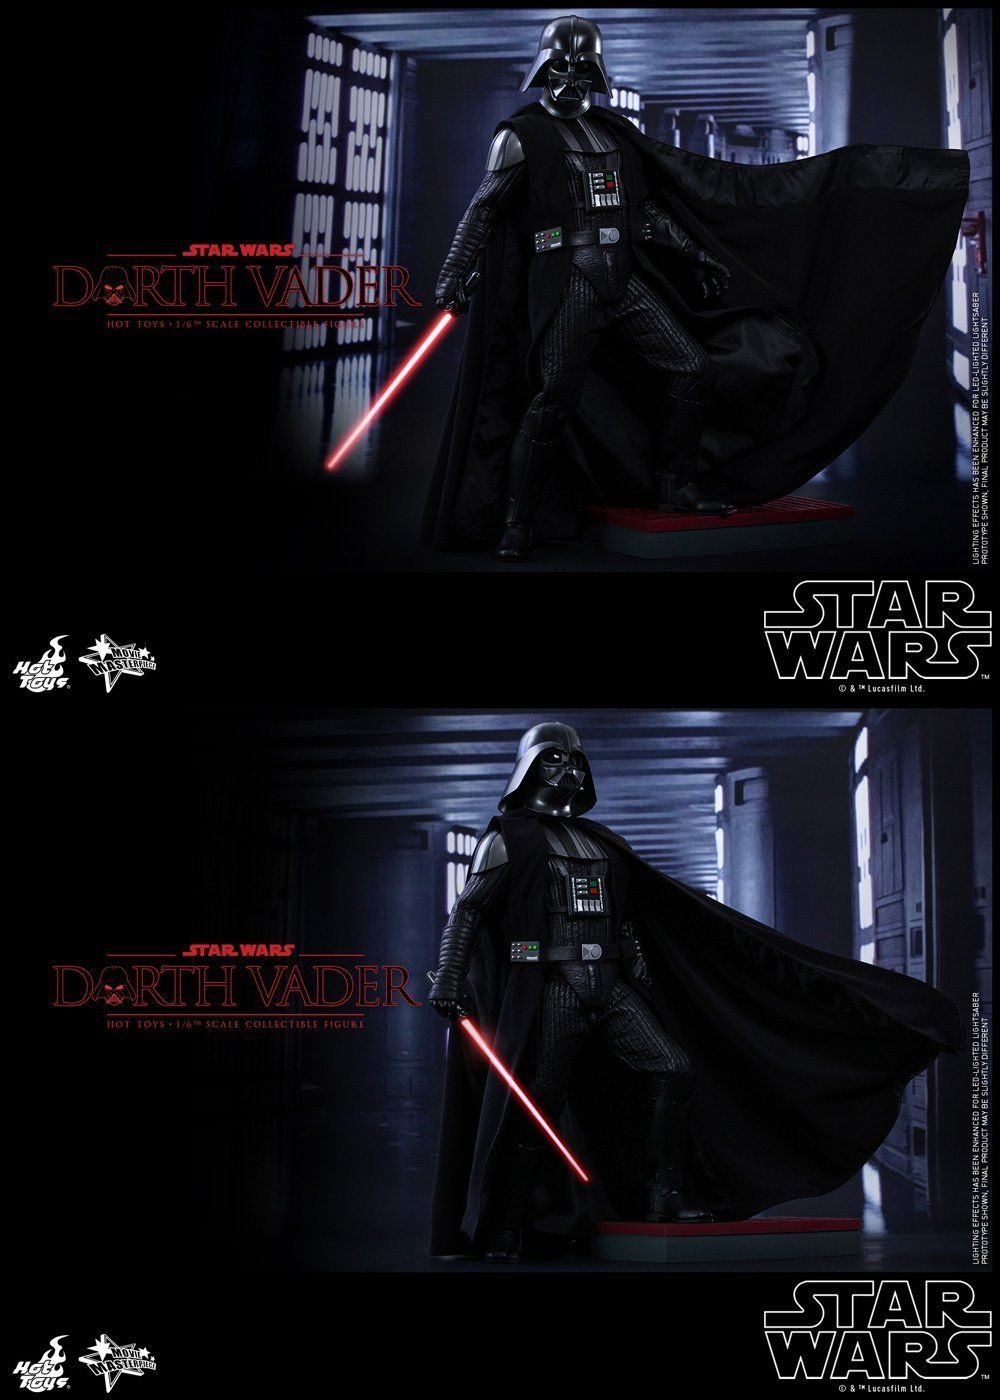 1 6 Darth Vader A New Hope Figure Darth Vader Is A Beautifully Crafted Figurine Of The Dark Lord Of The Sith Fro Darth Vader Star Wars Episode 4 A New Hope